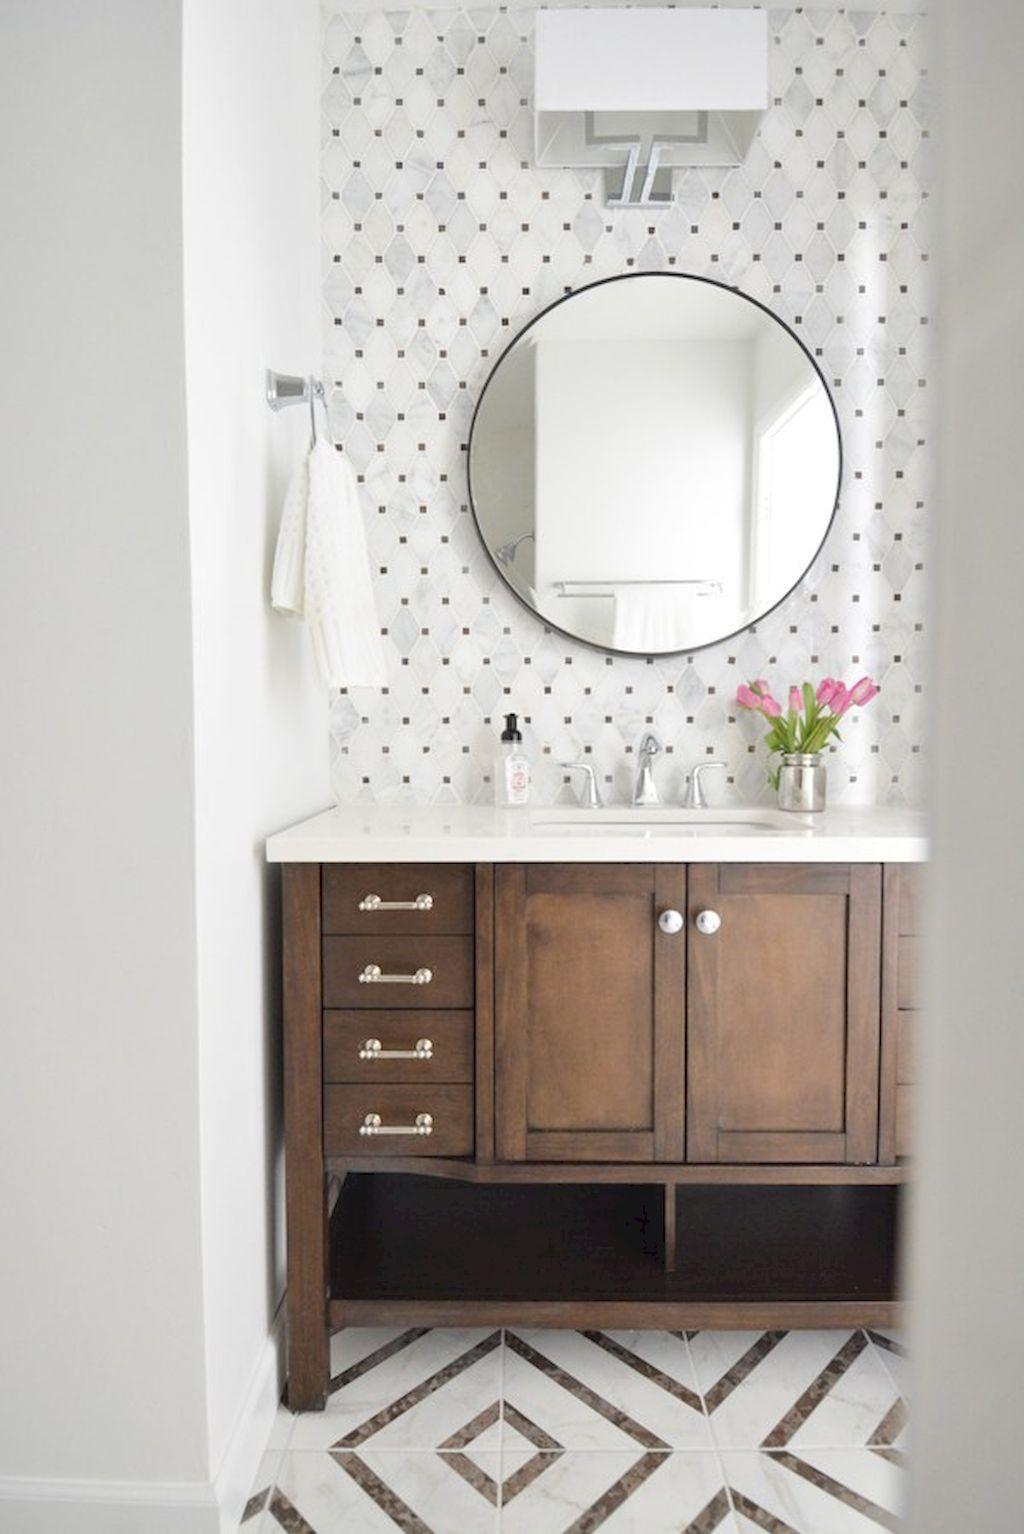 cool small master bathroom remodel ideas 16 residential rh pinterest com